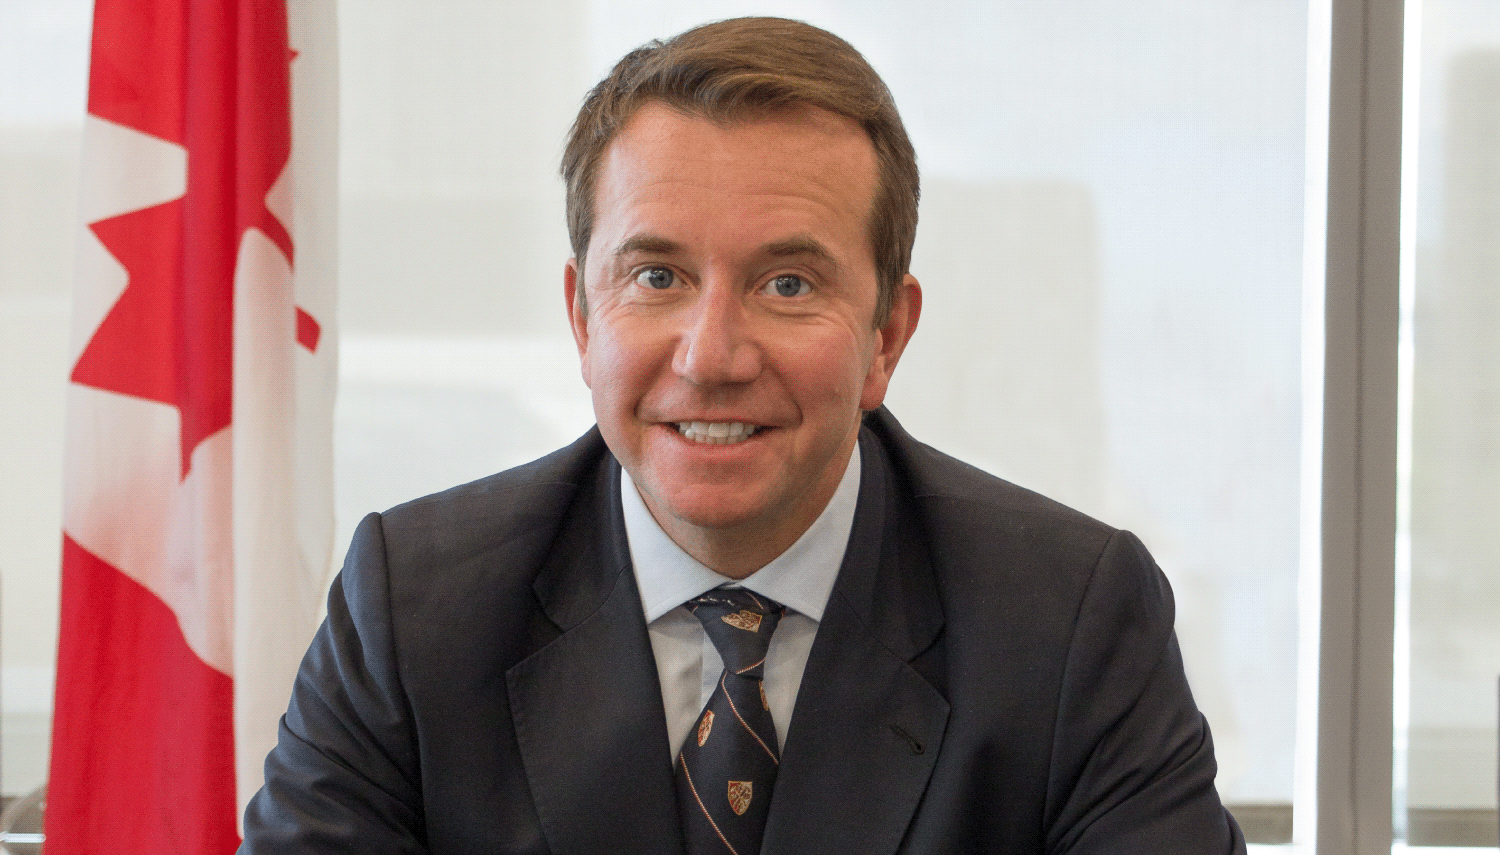 Photo of the Honourable Scott Brison